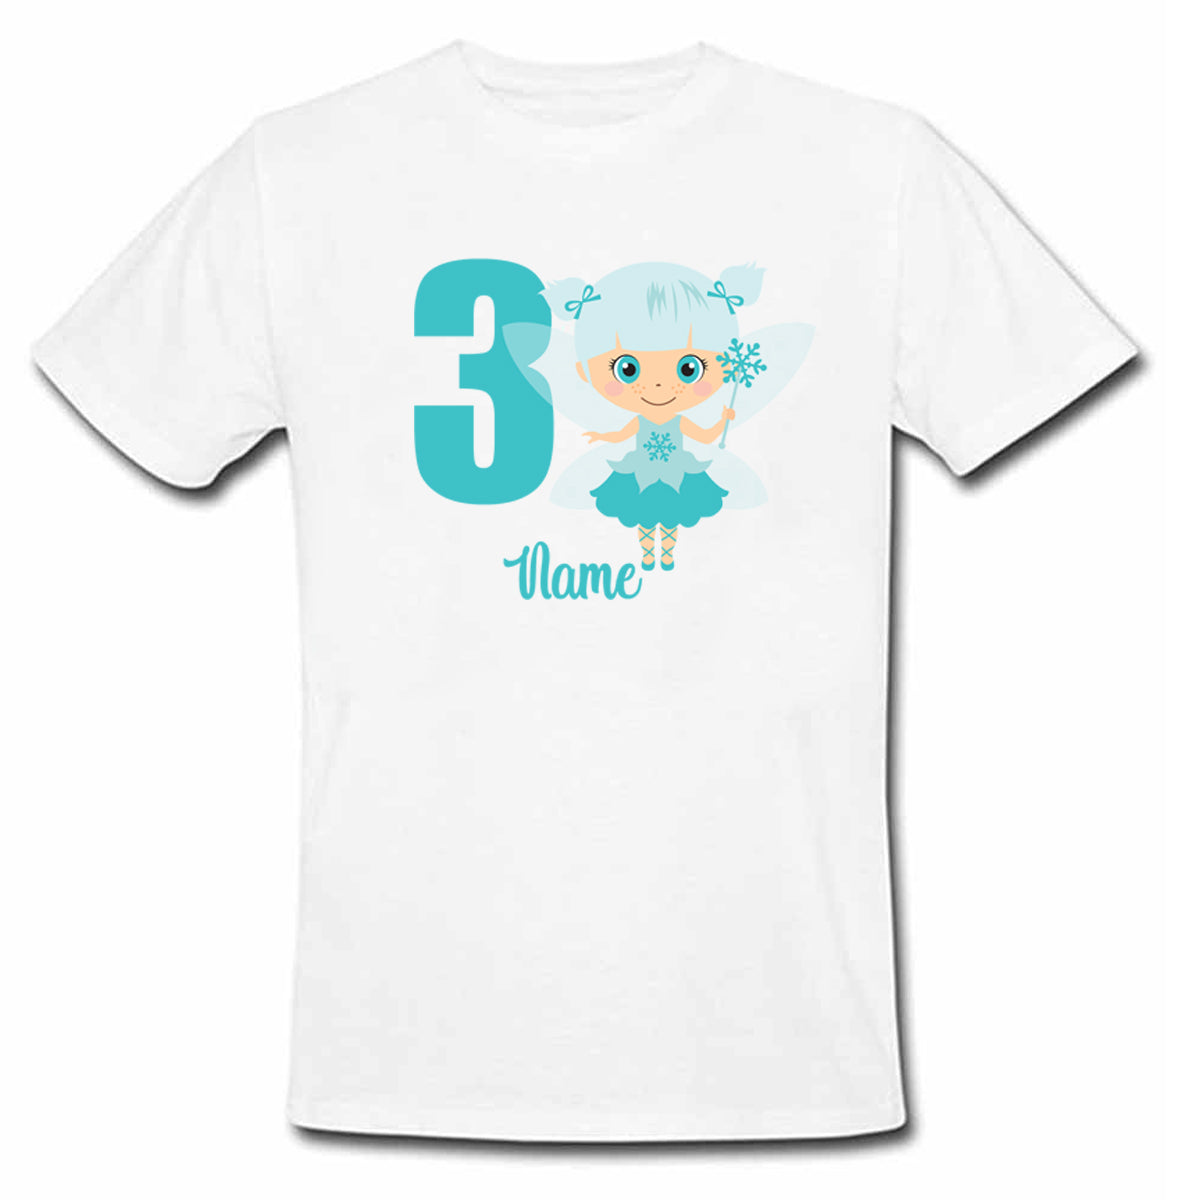 Sprinklecart Personalized Name and Age Printed Cute Fairy Poly-Cotton T Shirt Wear for Kids (White)